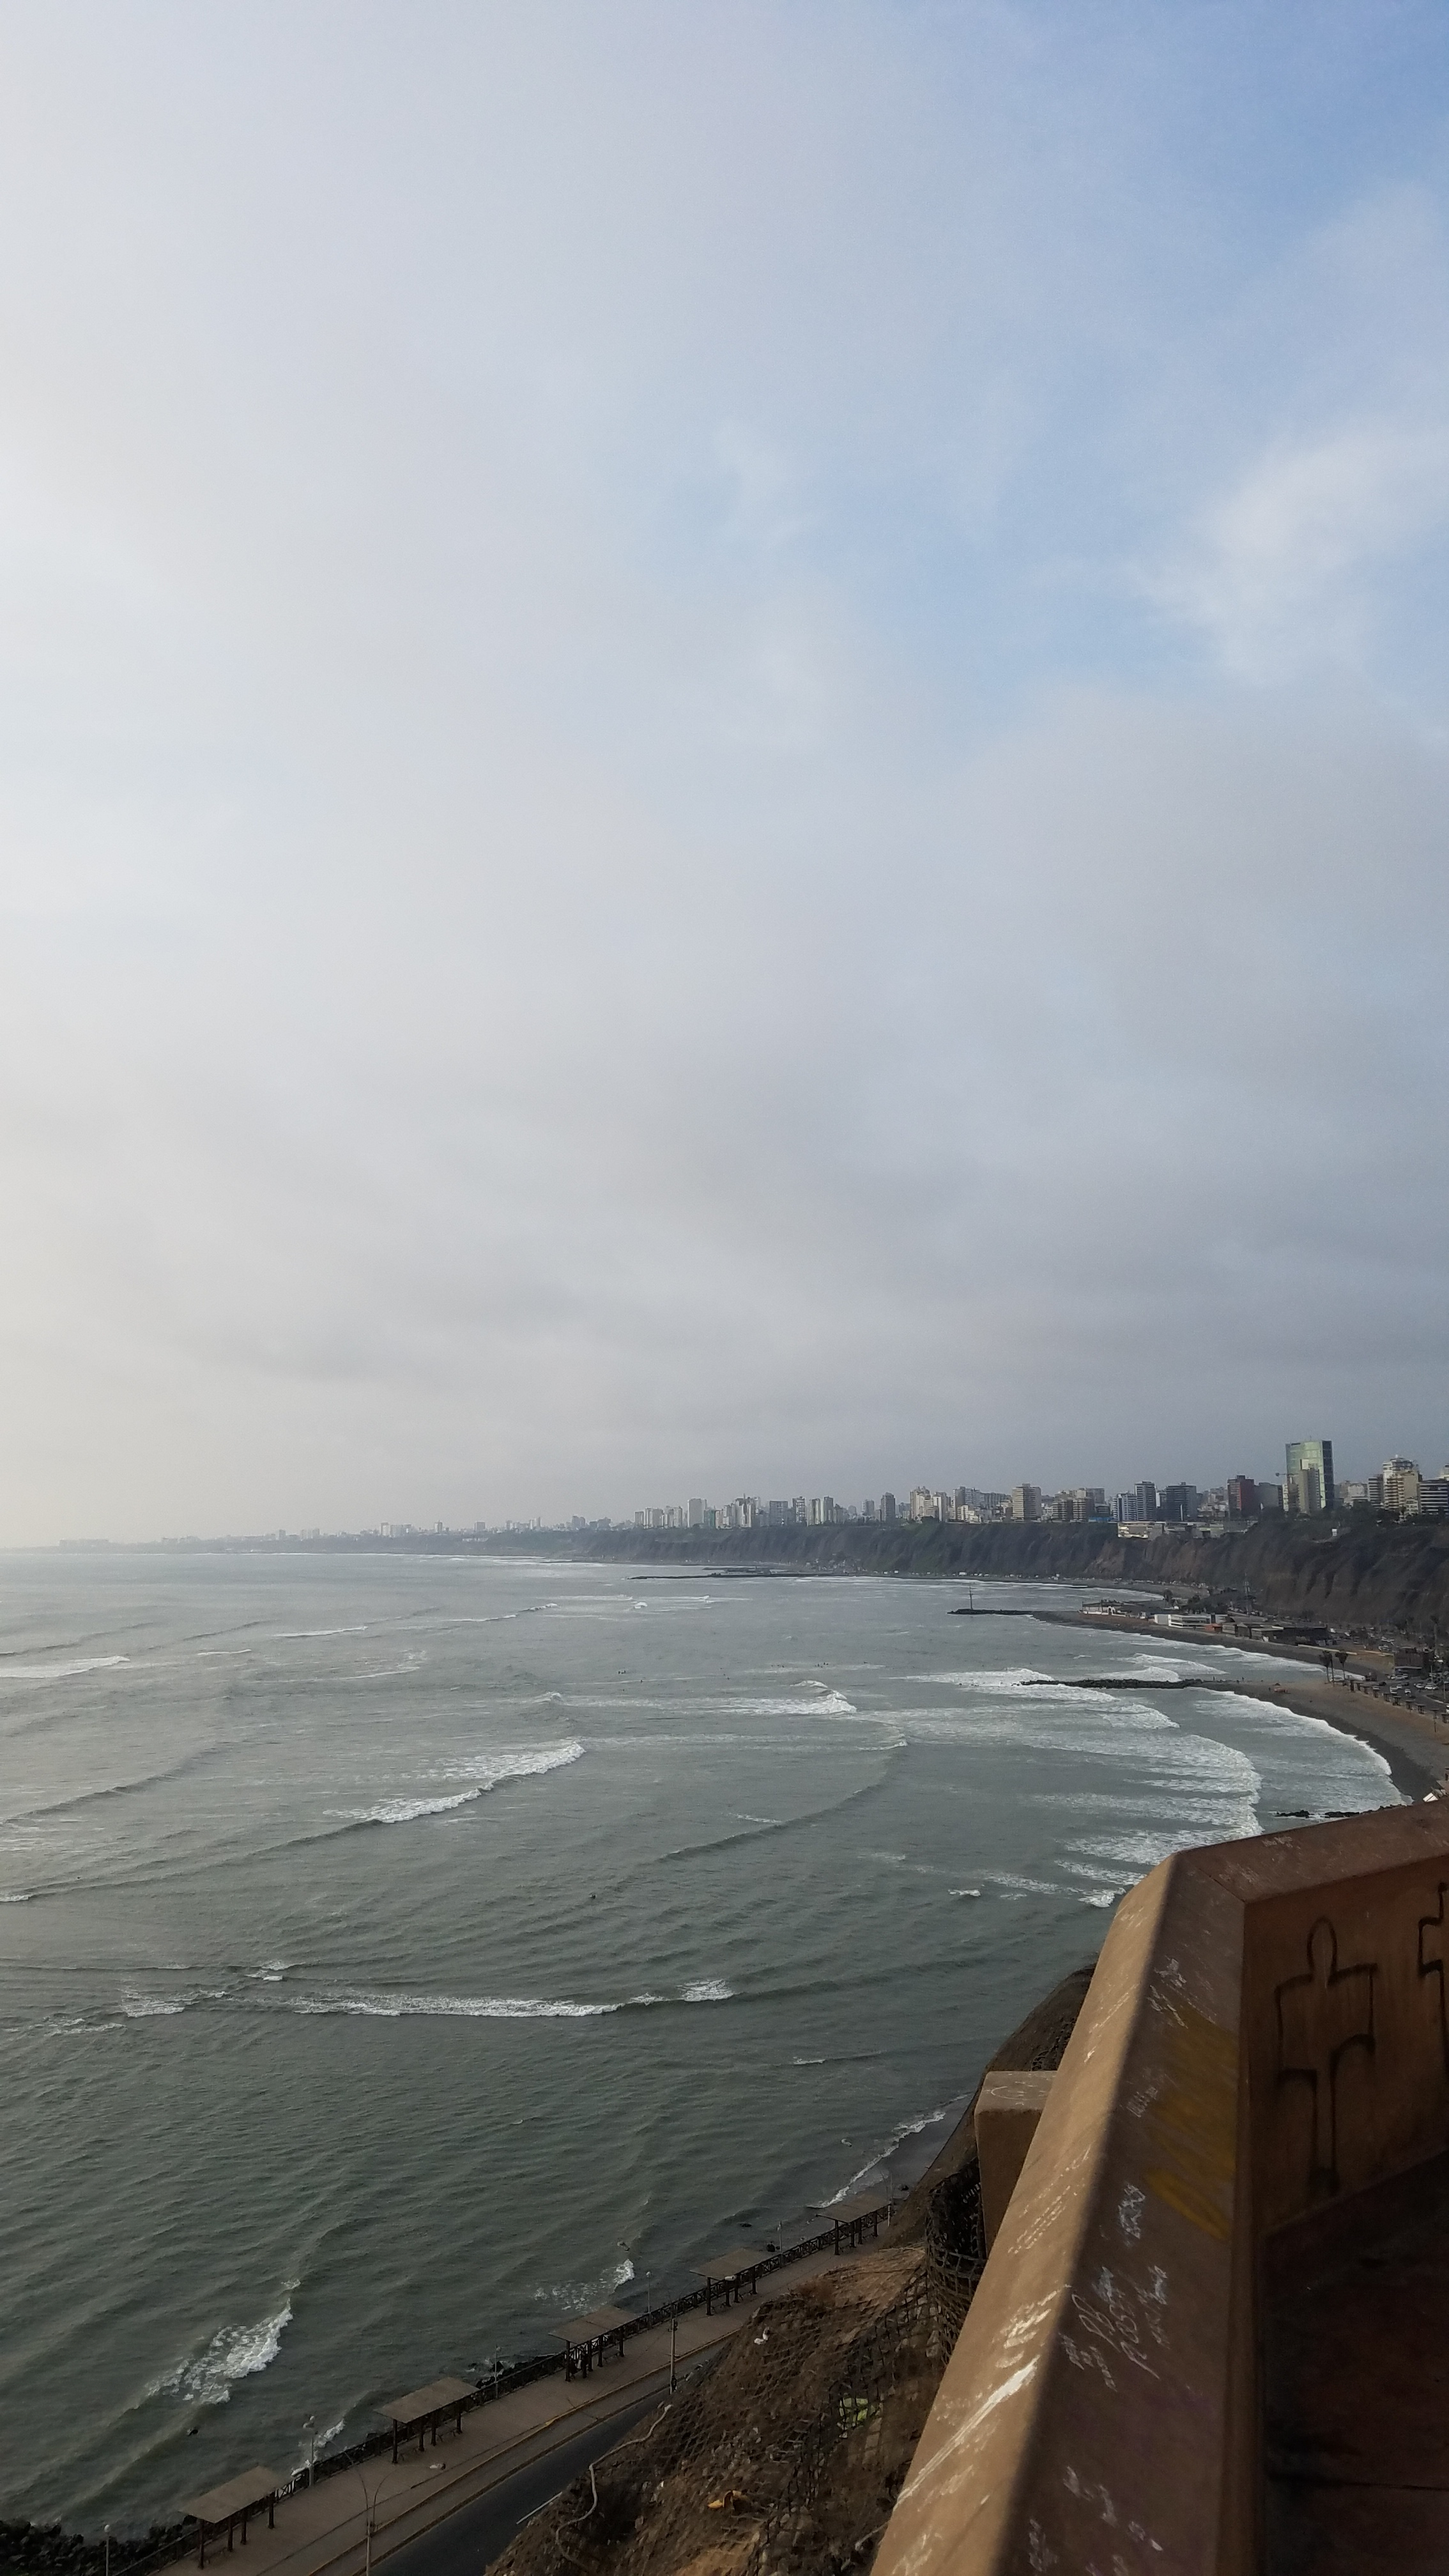 View of the surf from the cliffs of Barranco